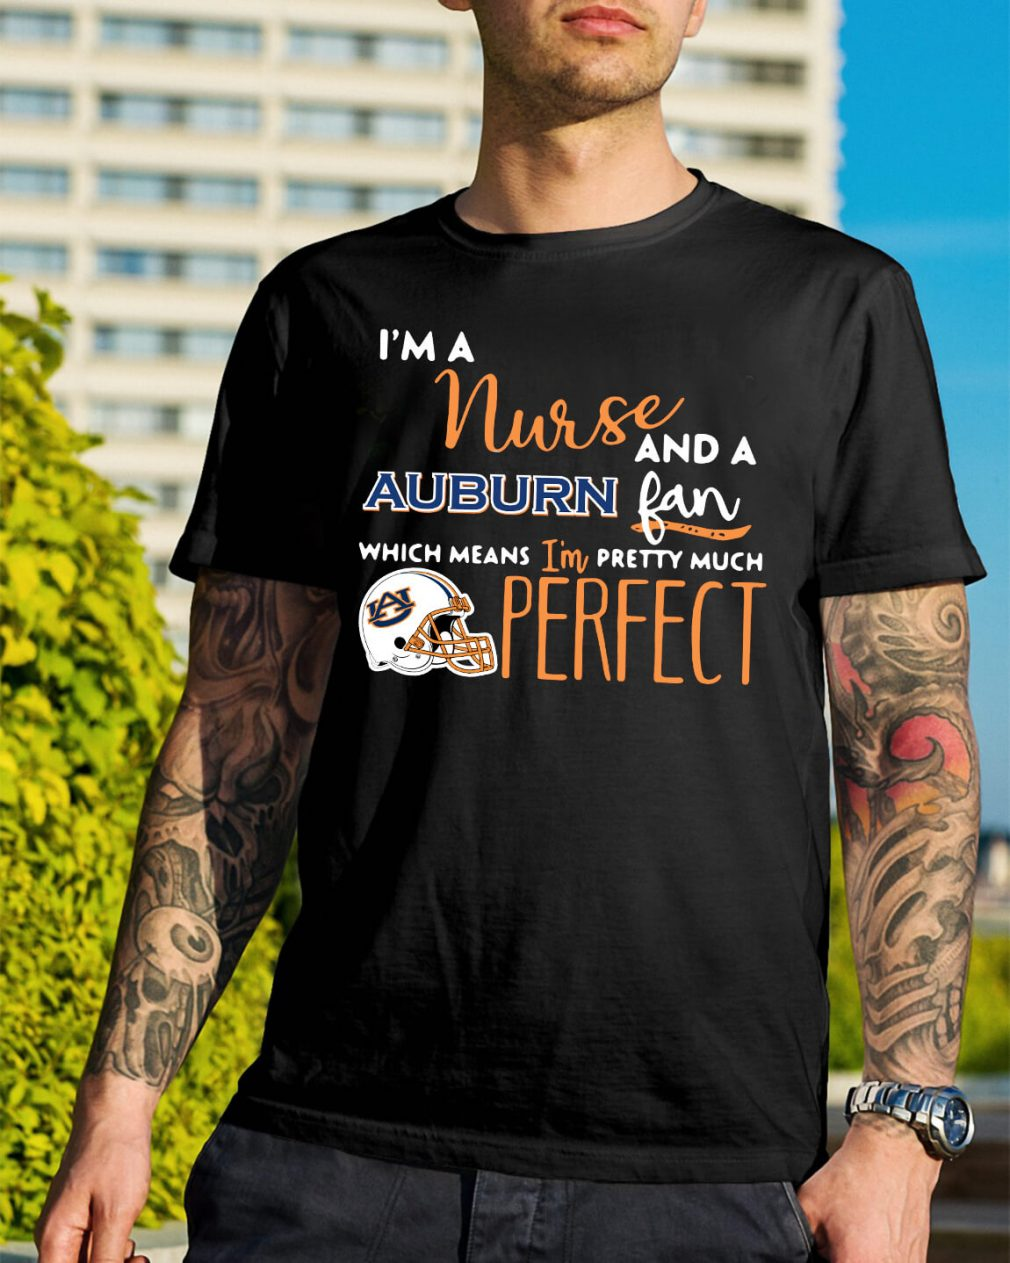 I'm a nurse and a Auburn fan which means I'm pretty much perfect shirt